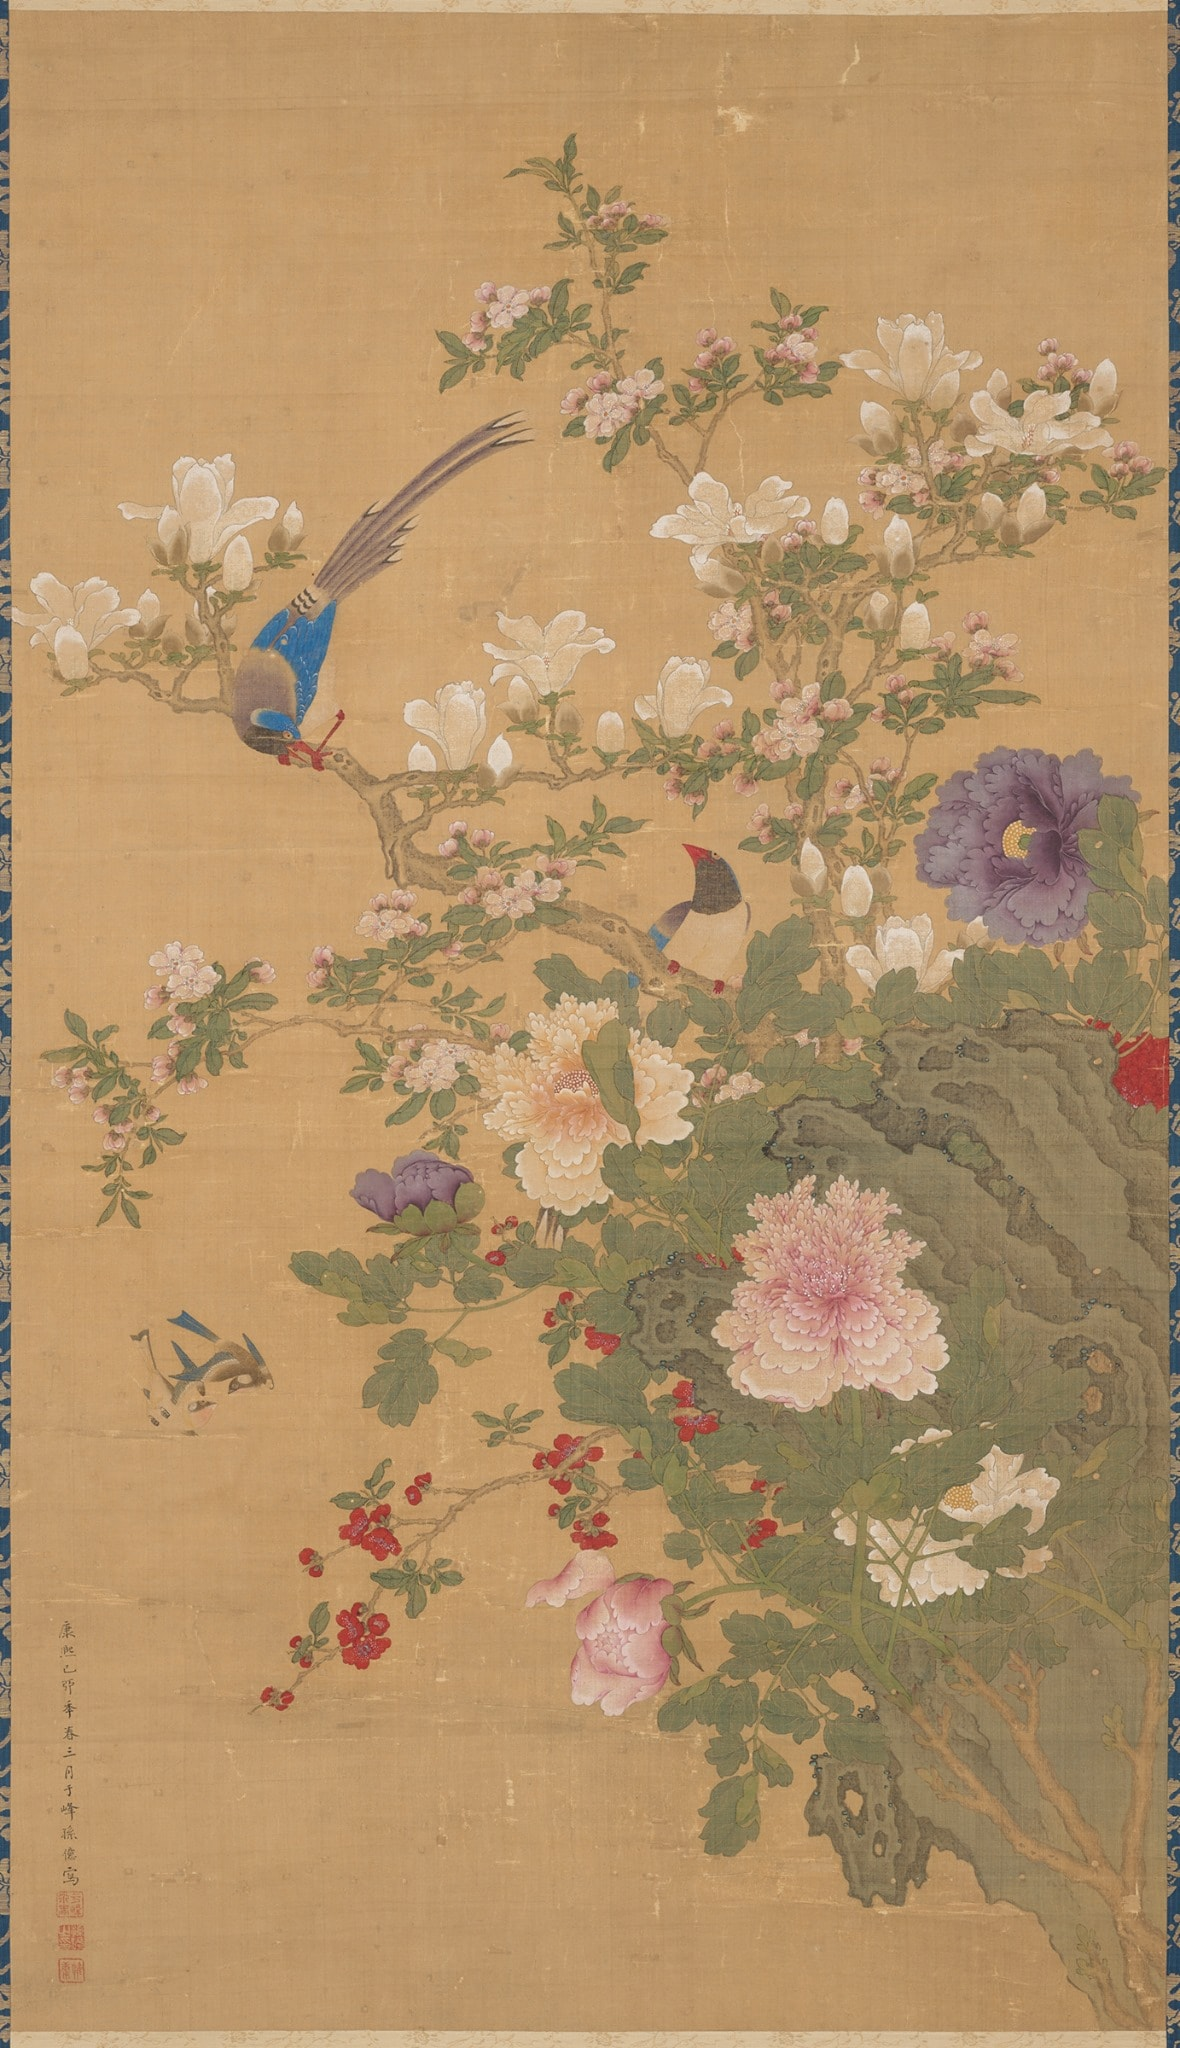 Image description: Birds and Flowers, Sun Yi, hanging scroll; ink and color on silk, painting: 48 1/2 x 27 3/4 inches; mounting; 92 1/2 x 34 inches. Detail of scroll depicting two birds perched on flowering branches. A brown bark covered branch bisects the work from upper left slanting down the lower right. A male bird grips the branch at left, grey plumed tail held high while it bows its blue capped head at its mate at lower right. Its wings are bright blue, body gray and beak, legs and feet a brilliant red. They perch among creamy white magnolia blossoms and buds, tiny pale pink crabapple blossoms and leafy greenery. A large peach magnolia blossom with its many layered, ruffled petals is at lower bottom next to a violet peony bud. The scene is set against a khaki background.